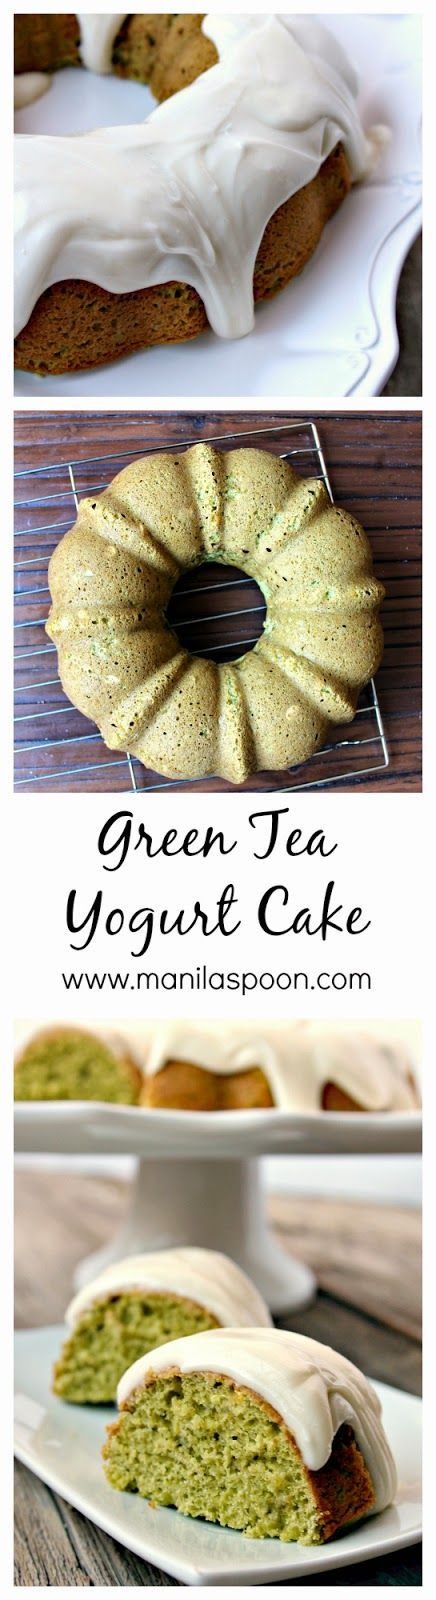 With a subtle hint of green tea, extra flavor and moisture from yogurt and a delicious frosting this cake is the perfect addition to your Thanksgiving, Christmas and holiday dessert table! | manilaspoon.com